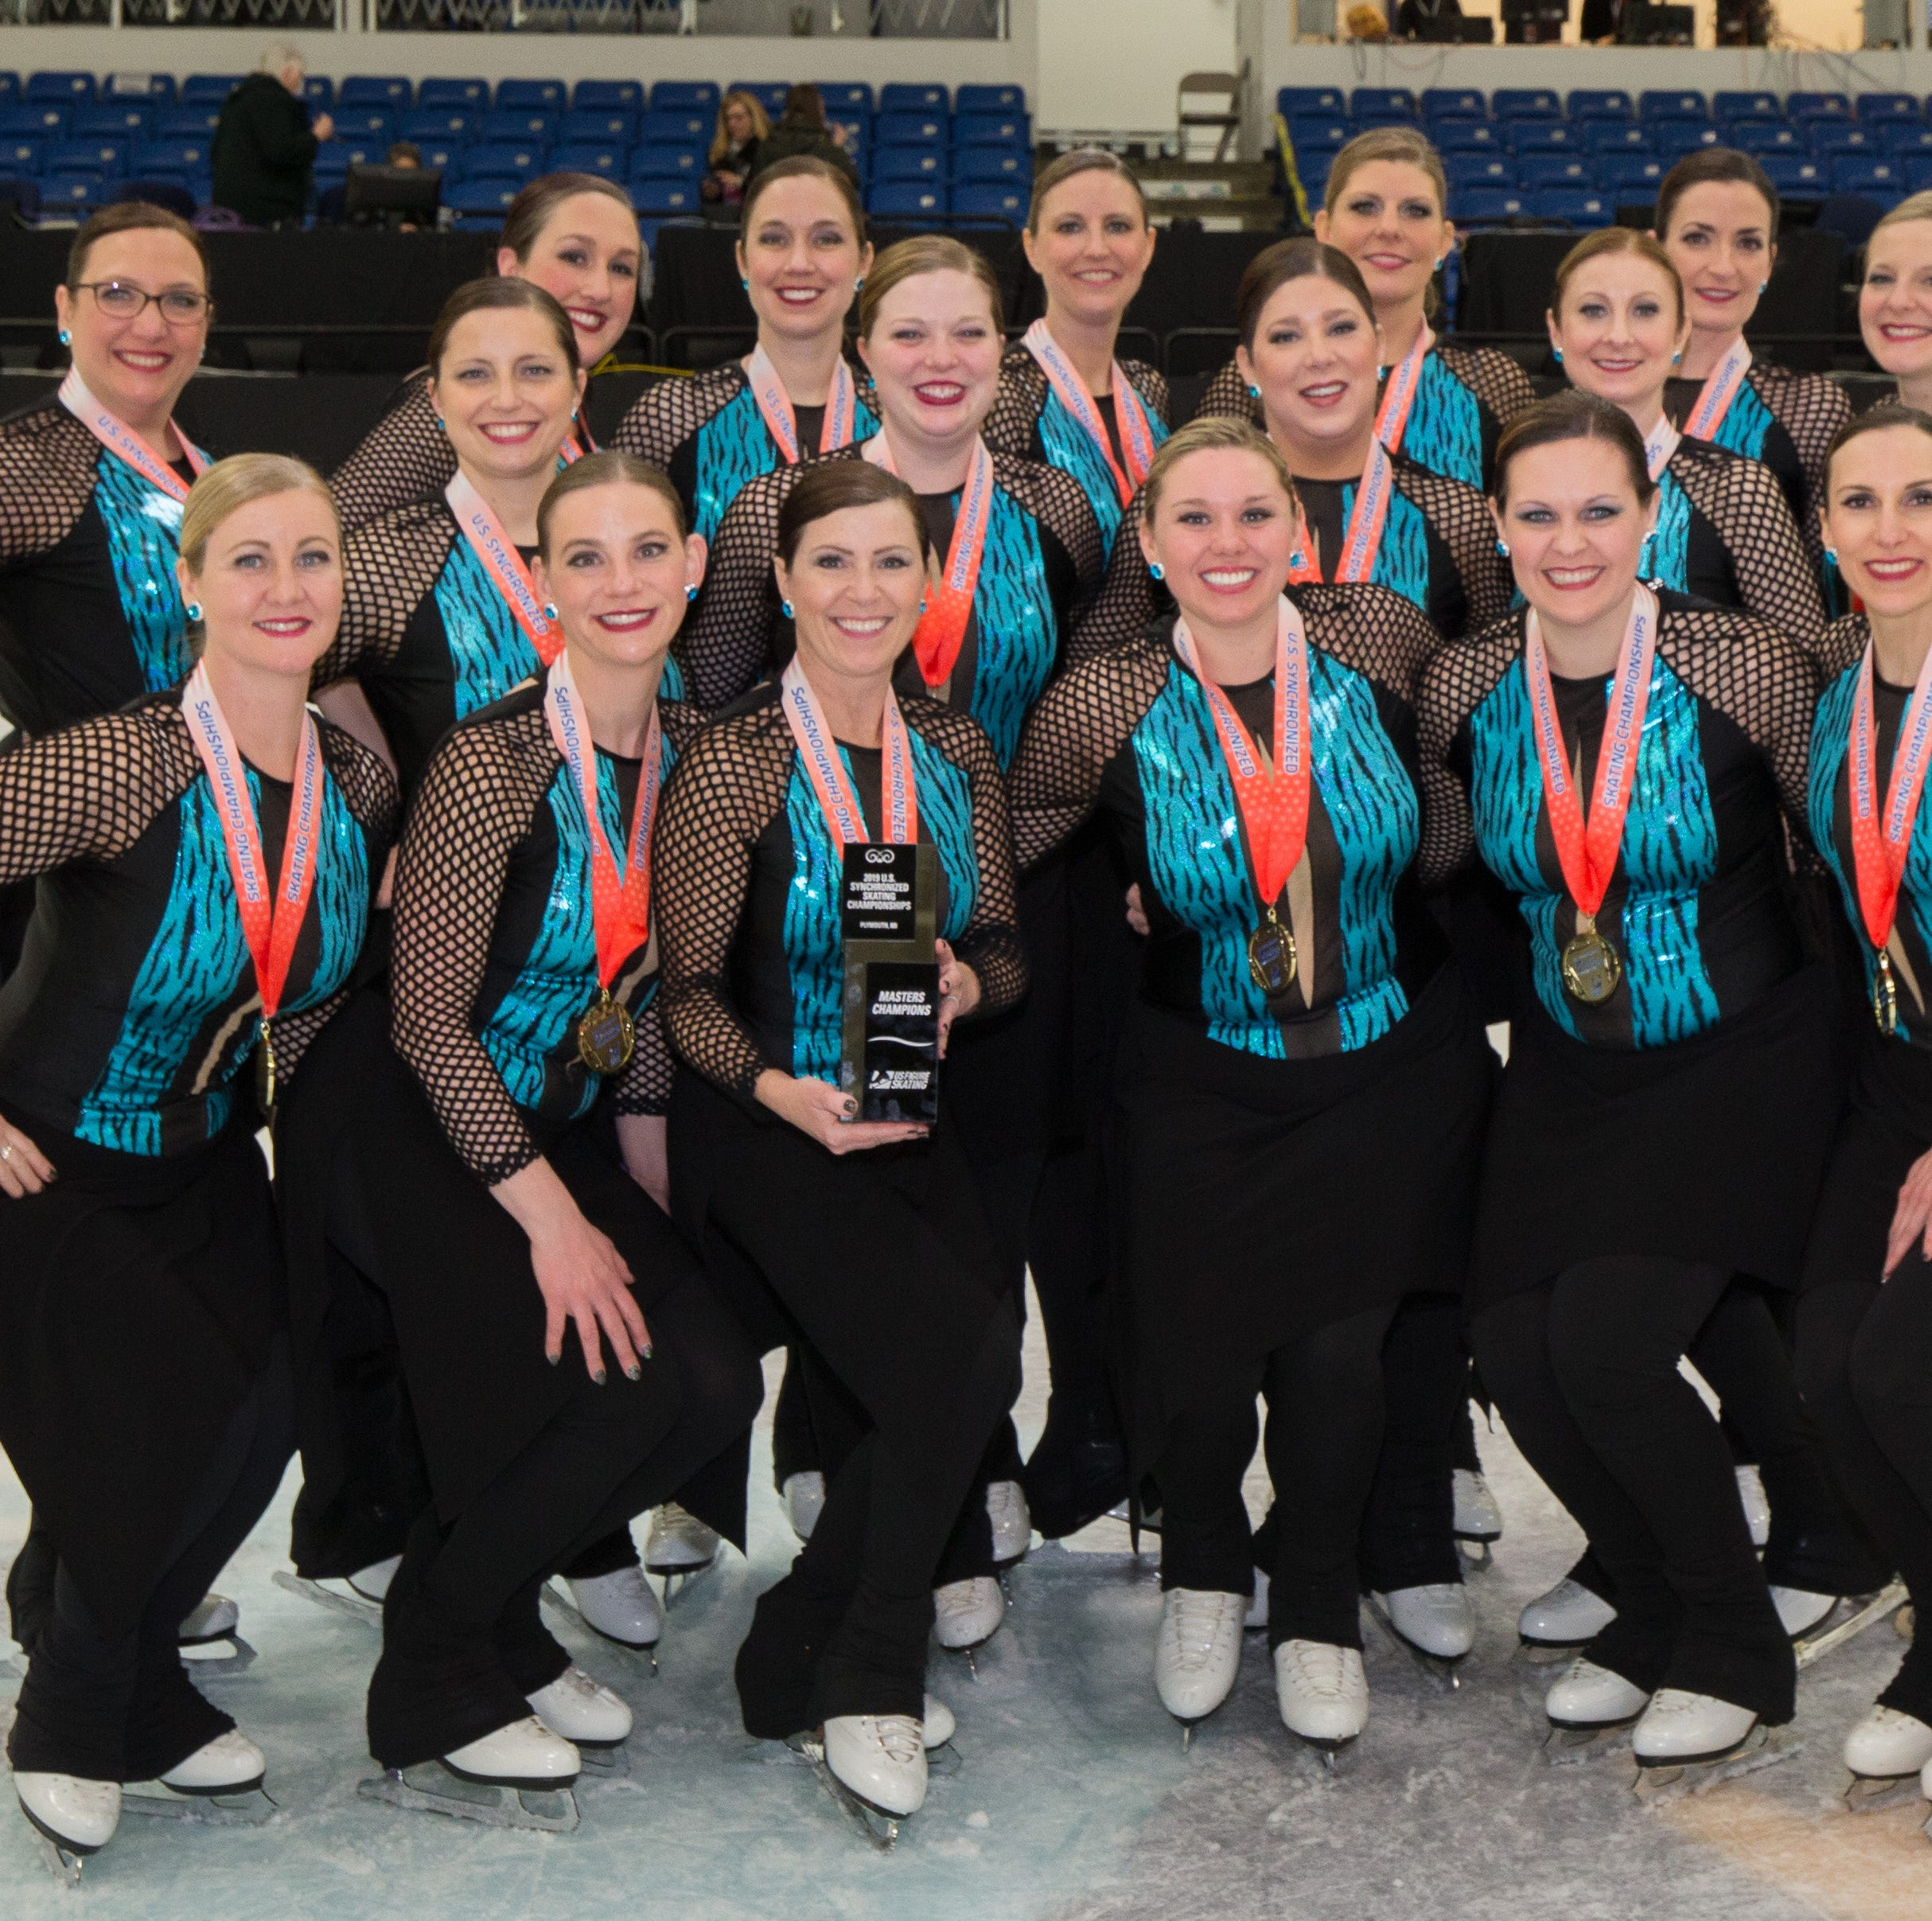 Allegro! Masters Synchronized Skating team wins gold medal at national championships